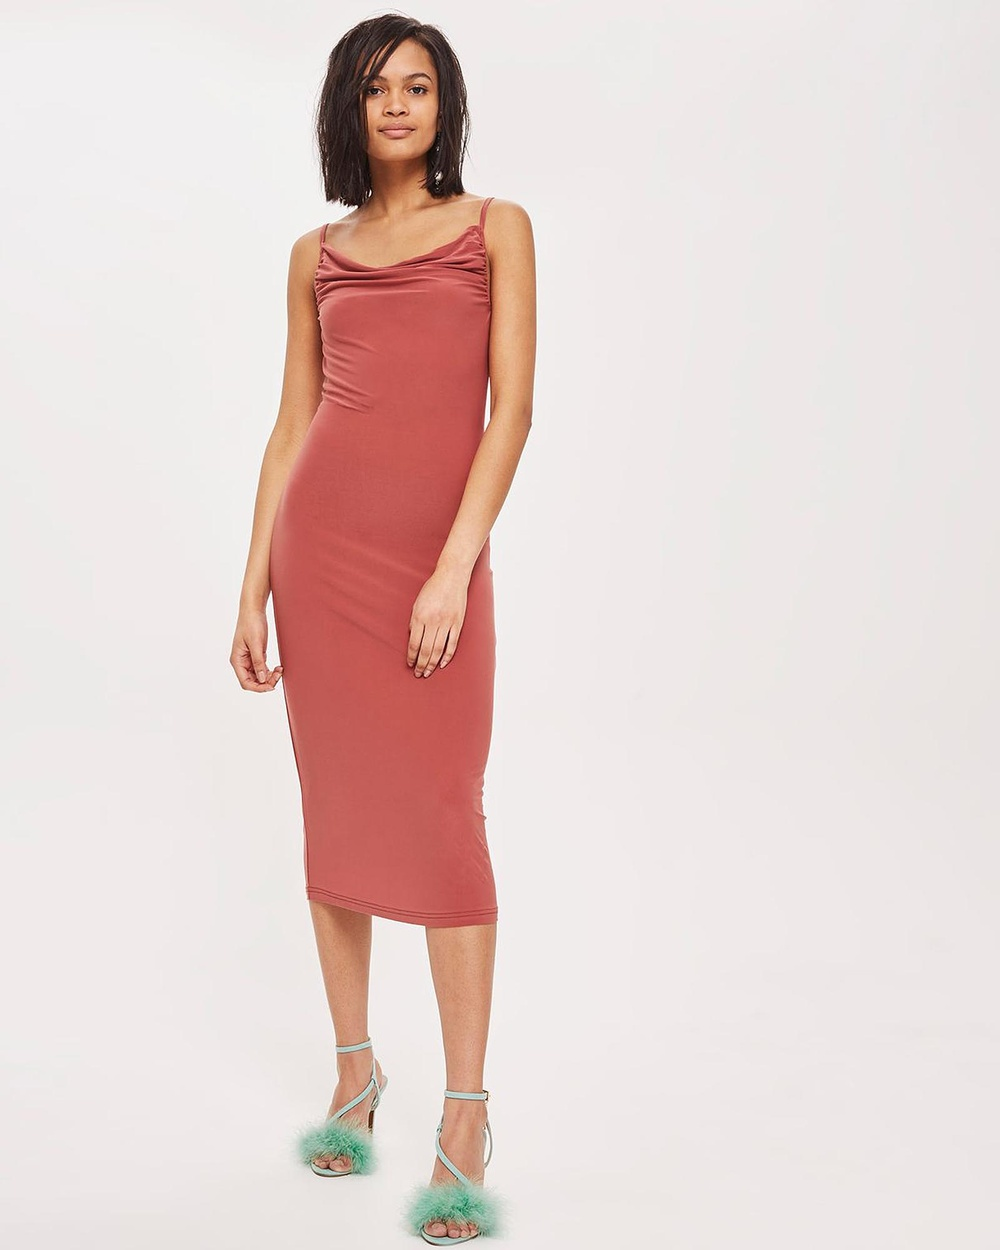 TOPSHOP Cowl Neck Slip Dress Dresses Rose Cowl Neck Slip Dress